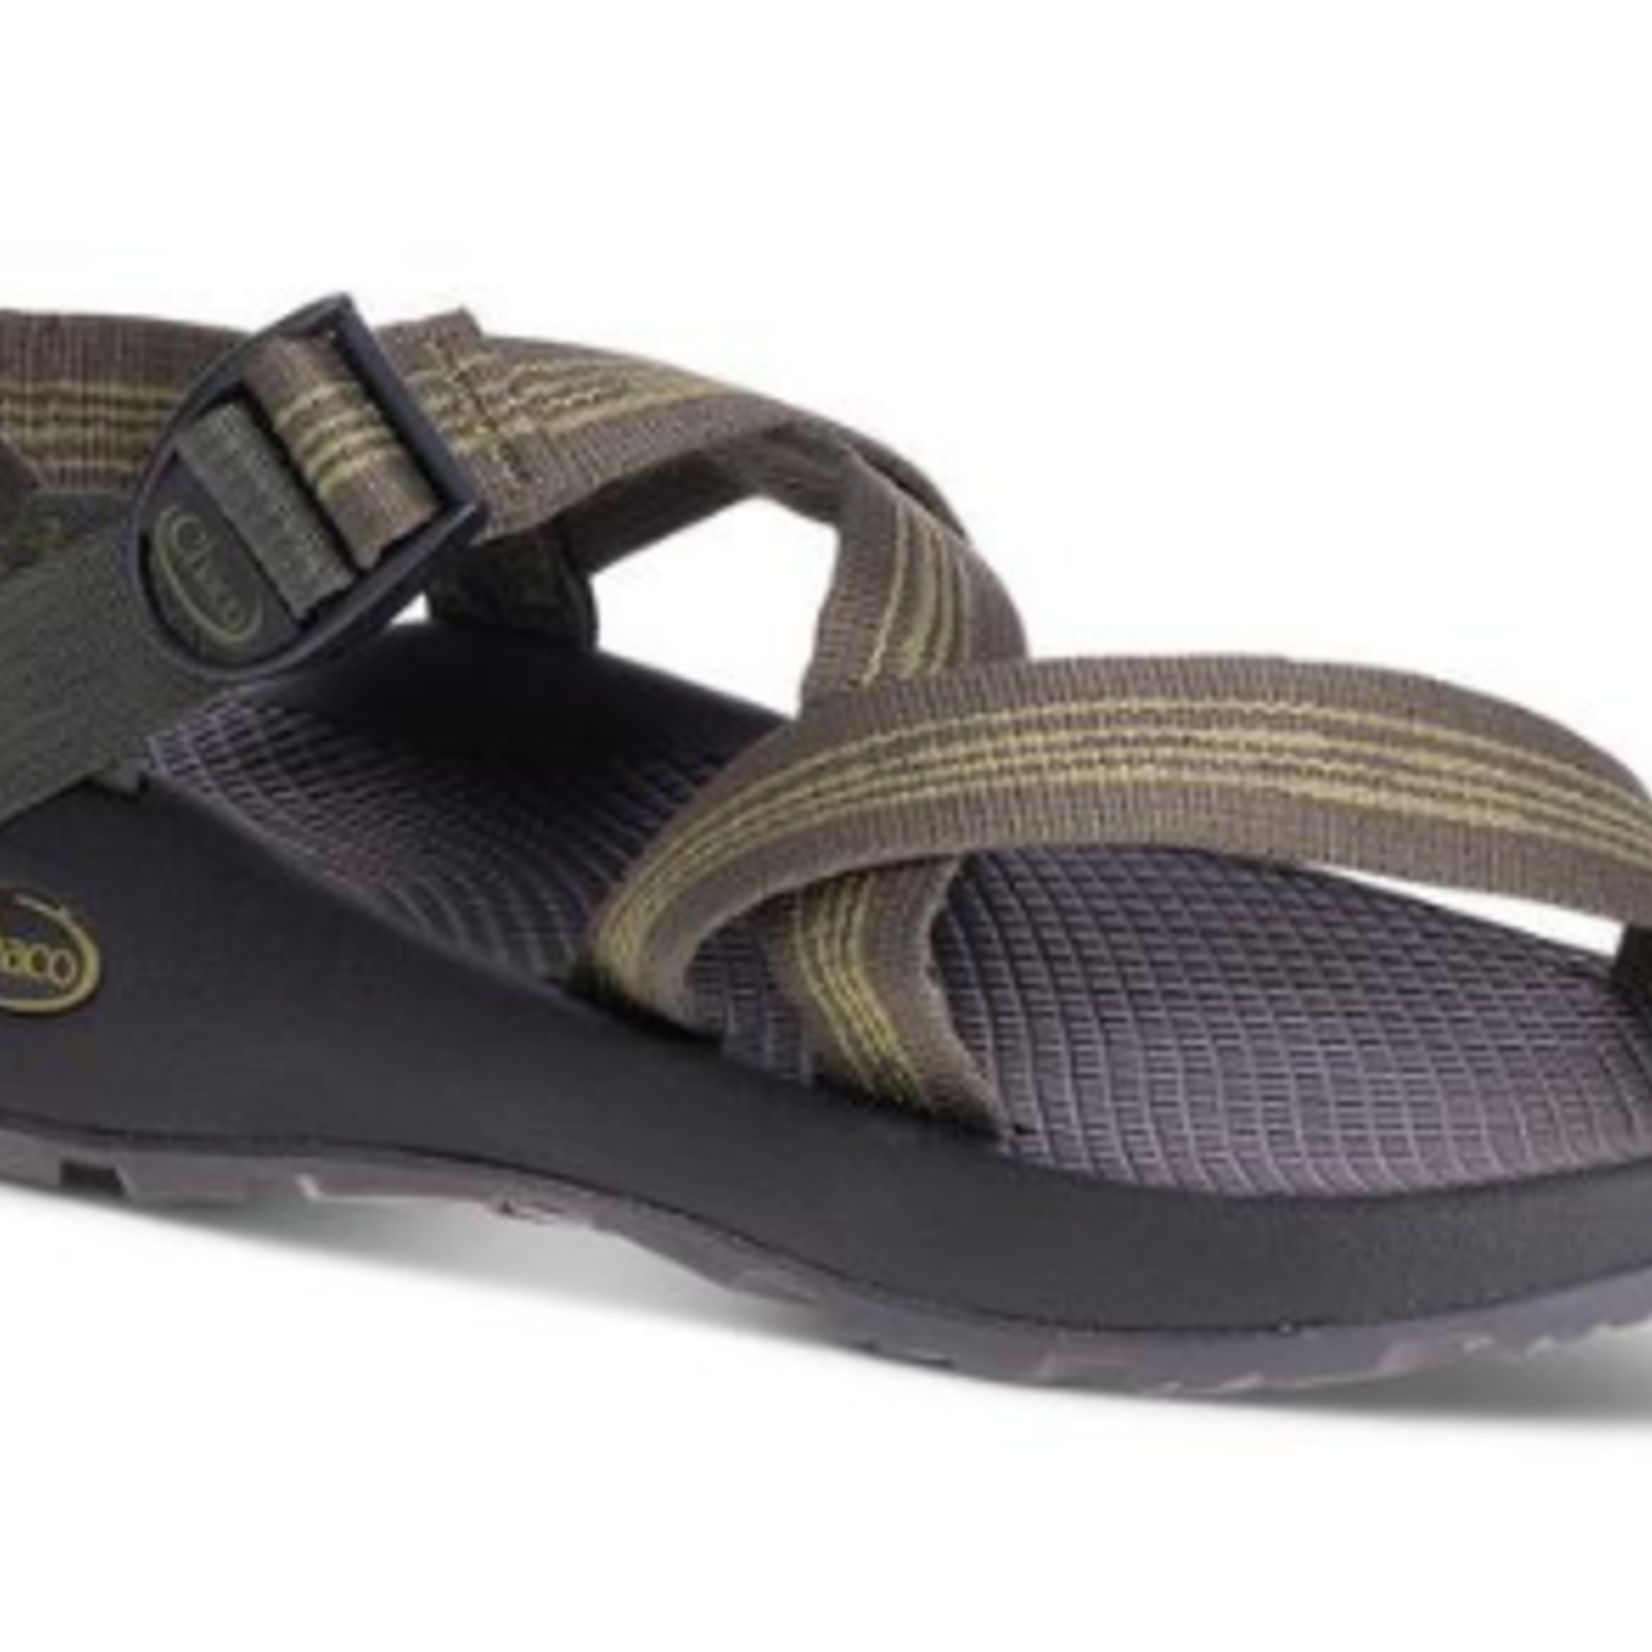 Chaco Chaco Z1 M's Classic